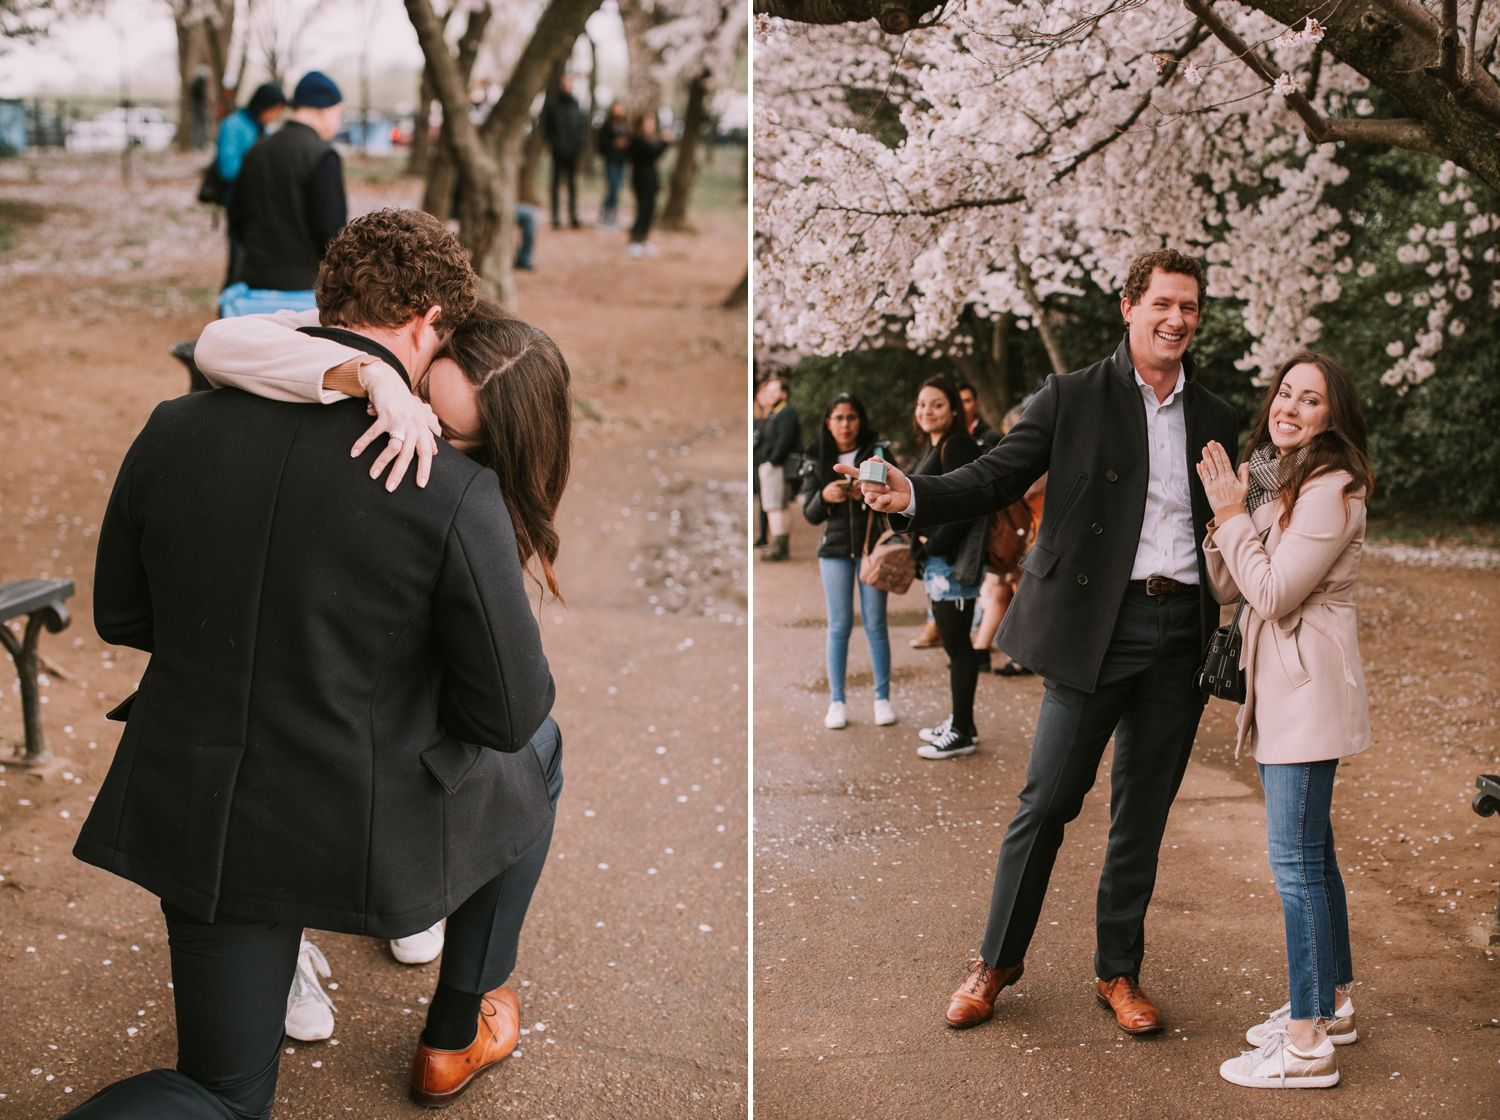 washington-dc-cherry-blossom-tidal-basin-proposal-photographer 5.jpg